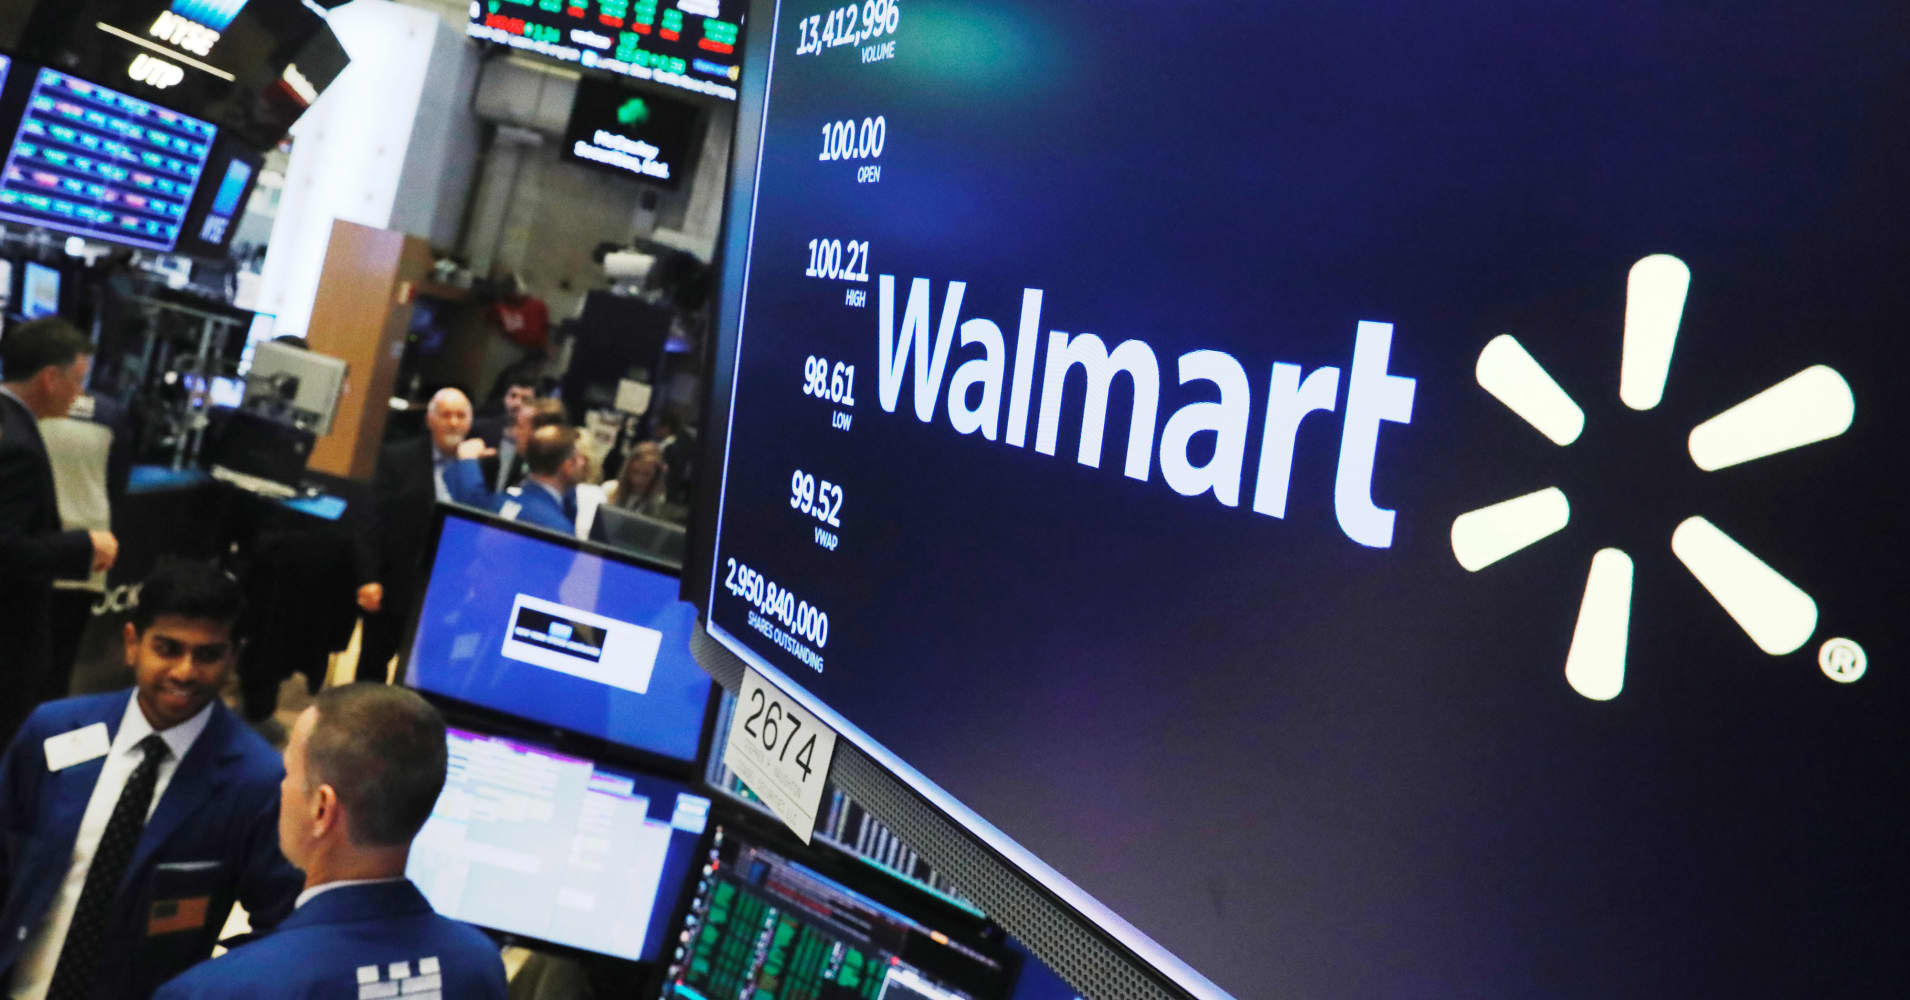 Stocks making the biggest moves midday: Walmart, PG&E, HSBC & more